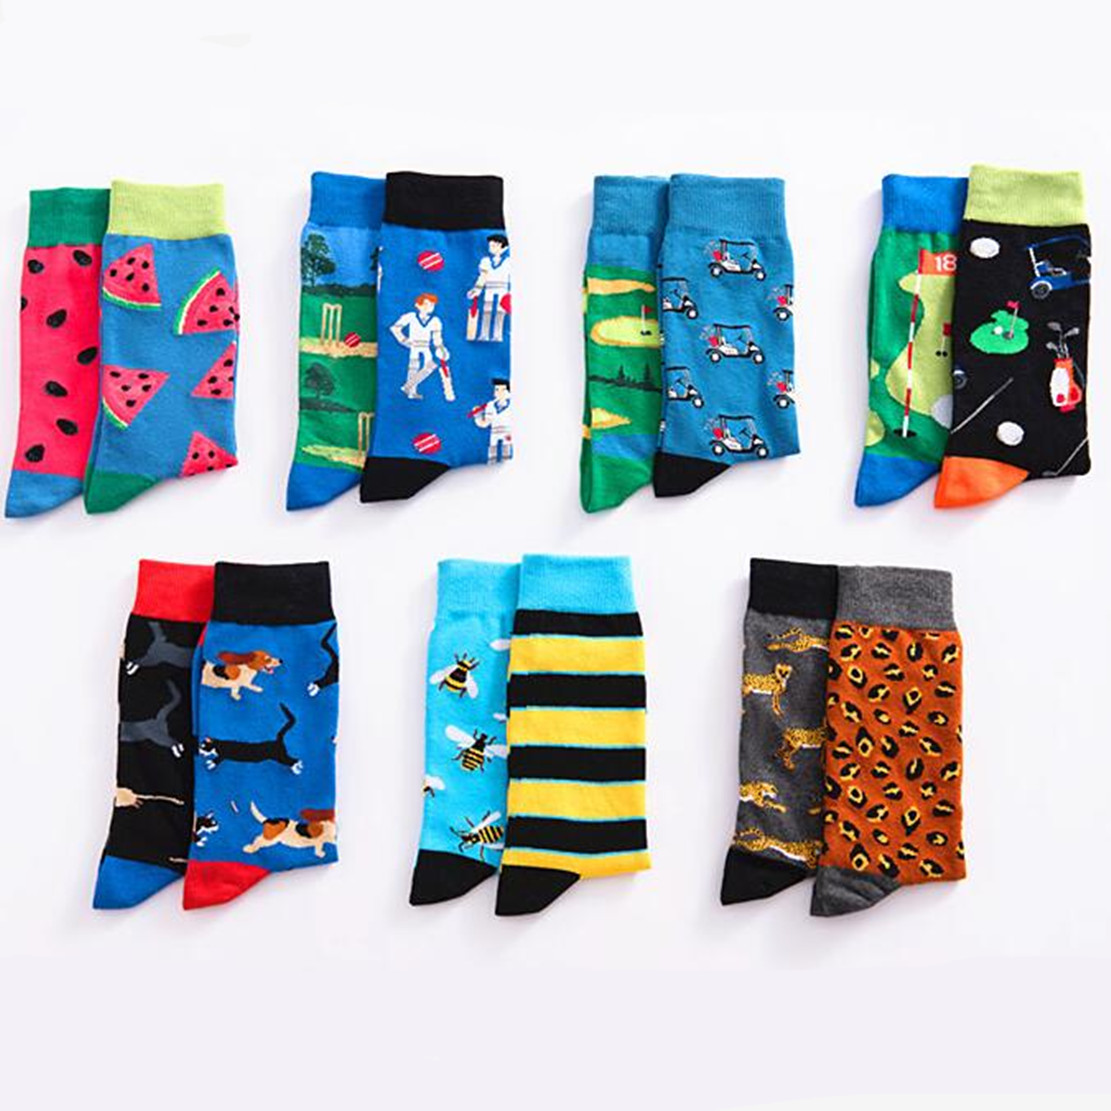 Bee Stripe Printed Socks Personalized Harajuku Compression Men Sock Funny Casual Novelty Sweat Absorbent Breathable Cotton Socks